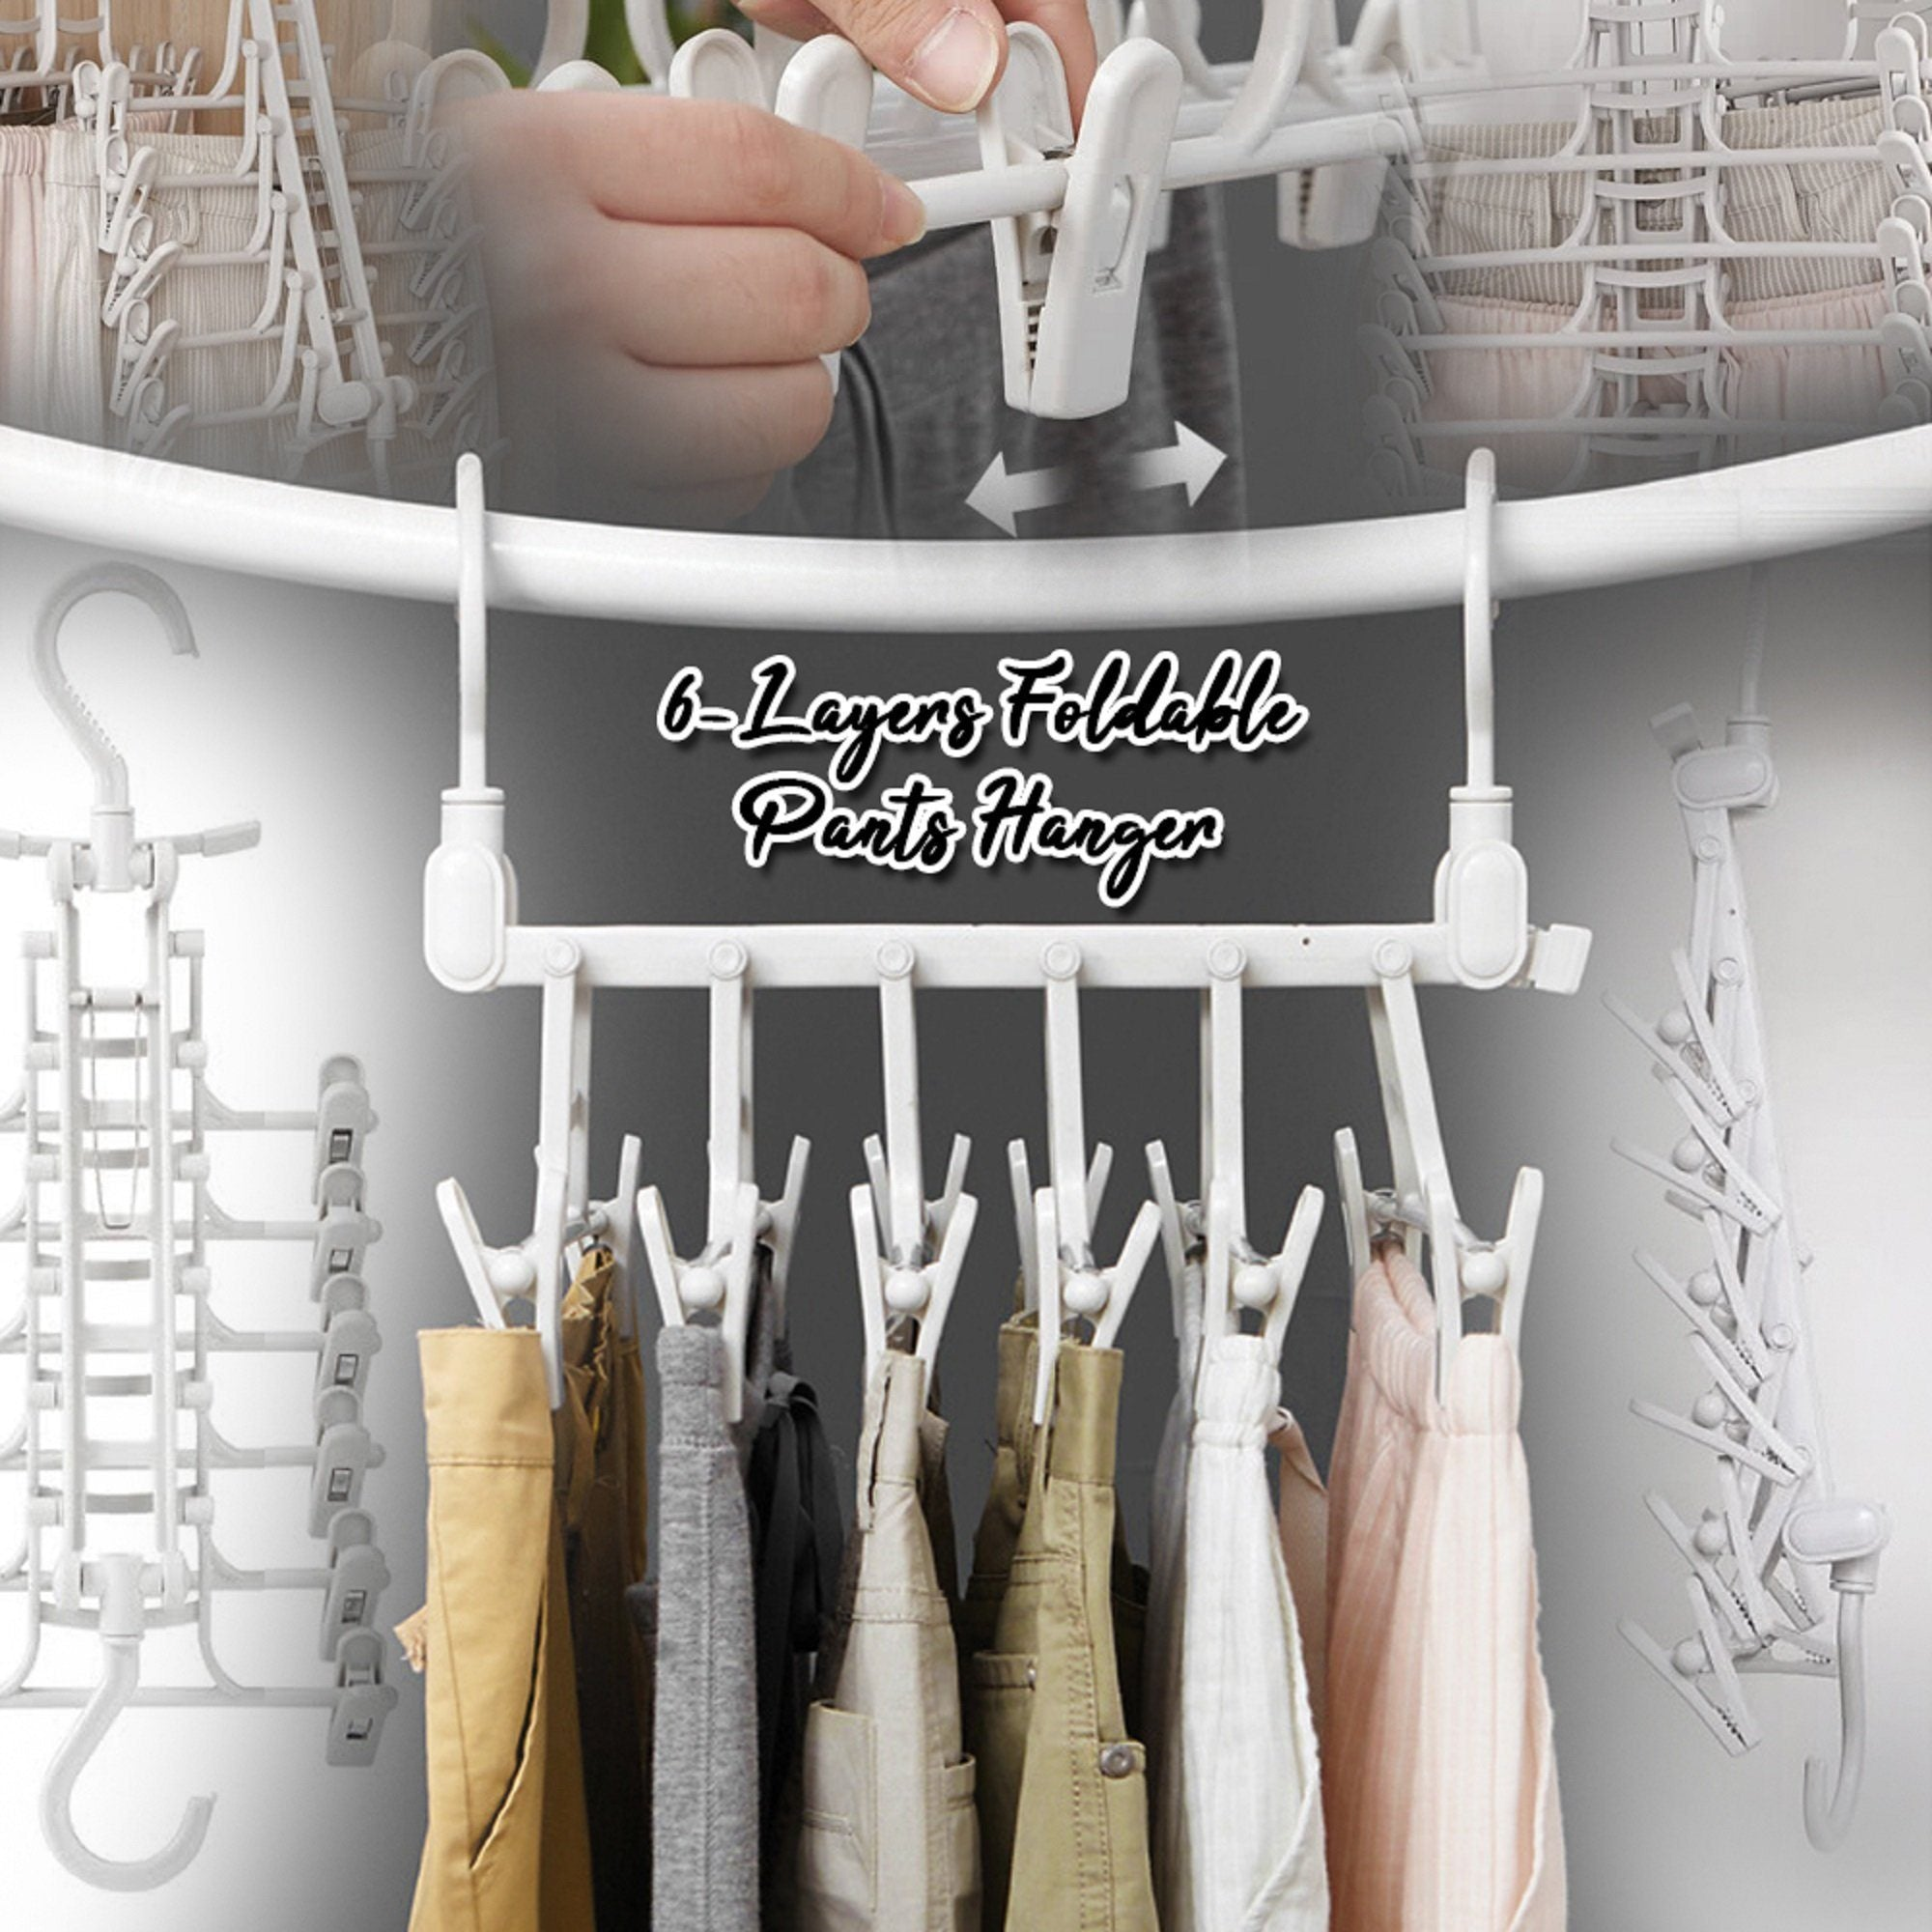 6-Layers Foldable Pants Hanger